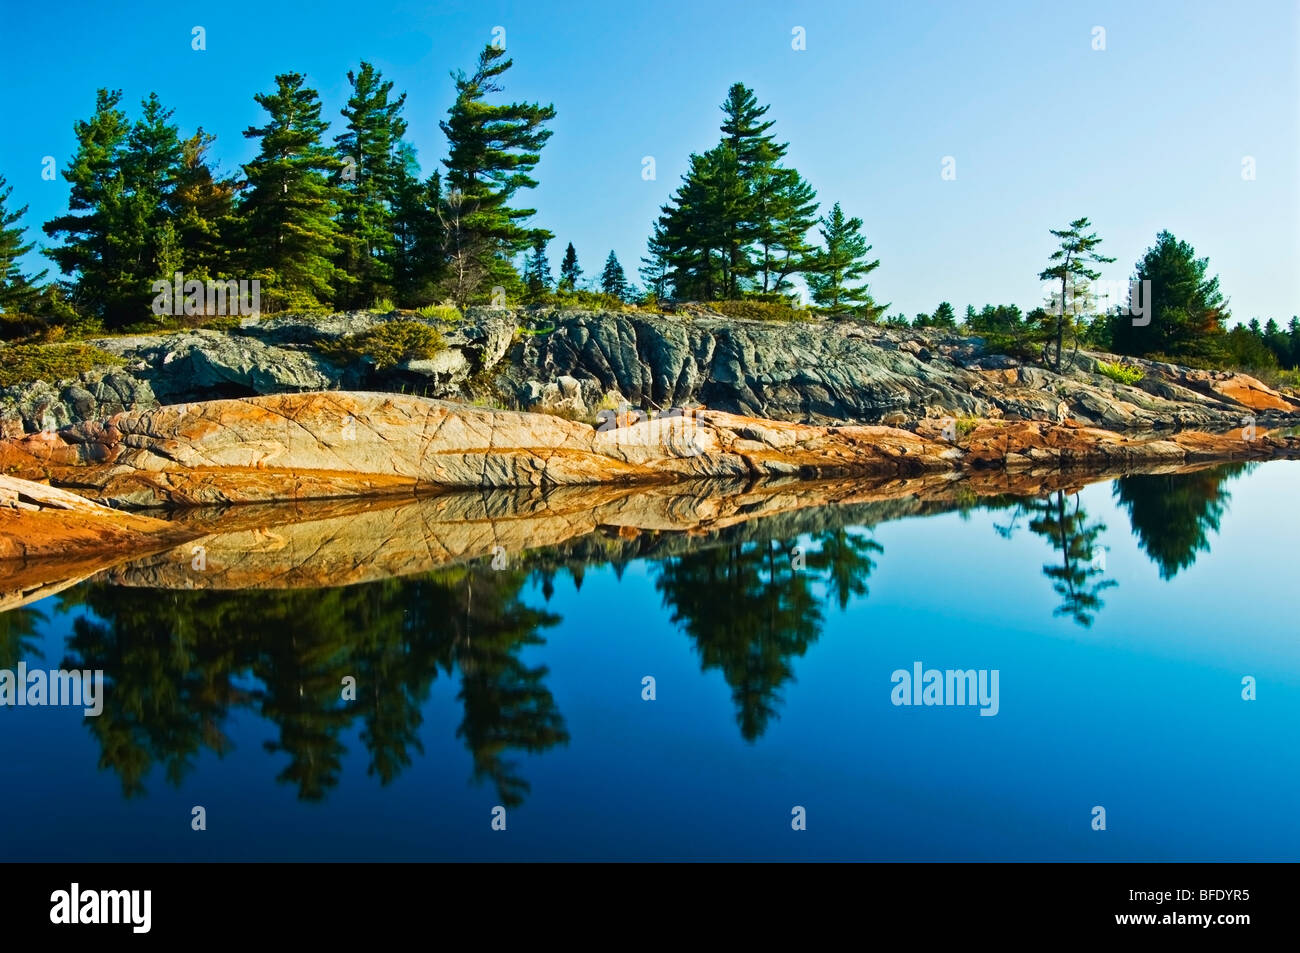 Eastern white pines (Pinus strobus) reflected in Georgian Bay, French River Provincial Park, Ontario, Canada - Stock Image